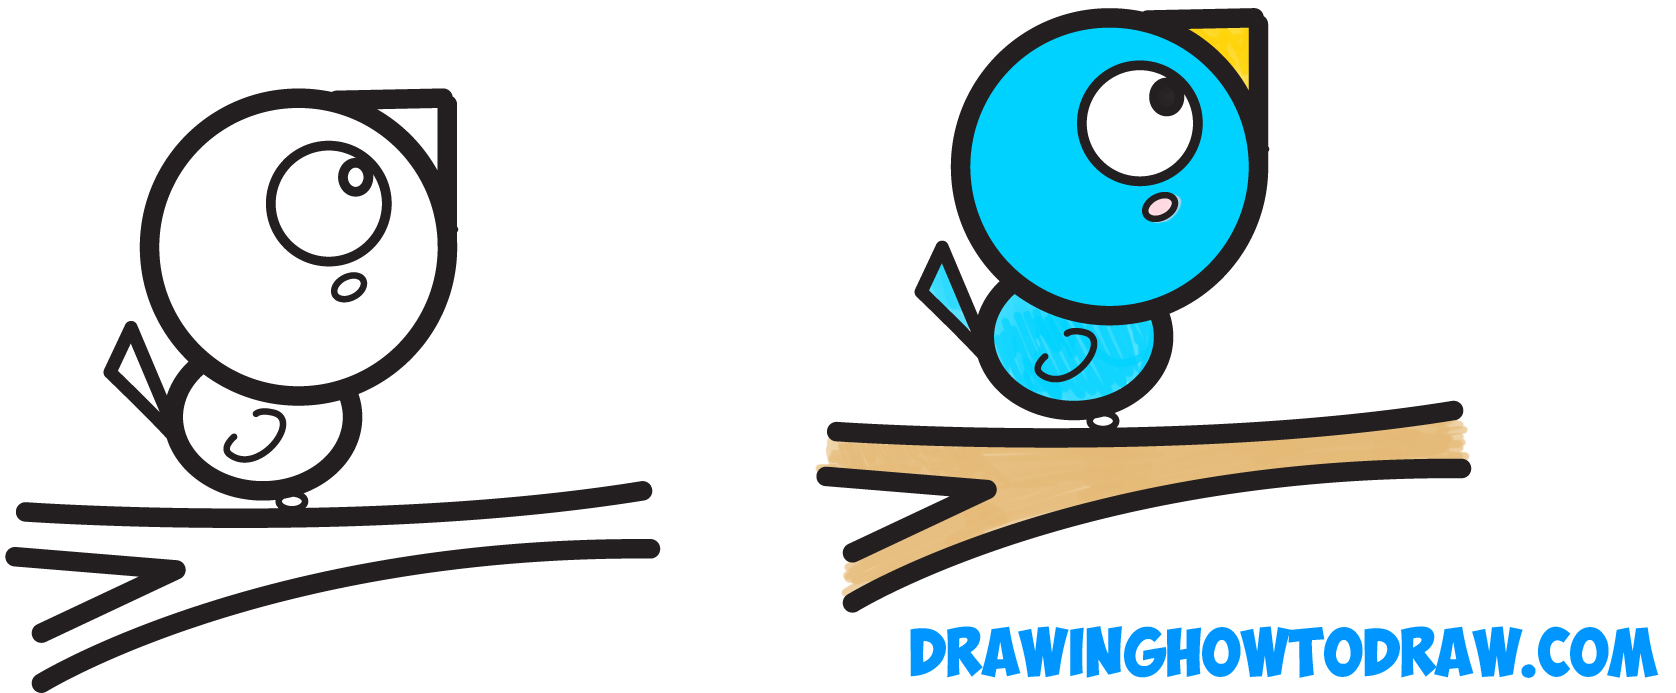 Learn How to Draw a Cute Cartoon Bird on a Branch with Numbers Simple Steps Drawing Lesson for Children